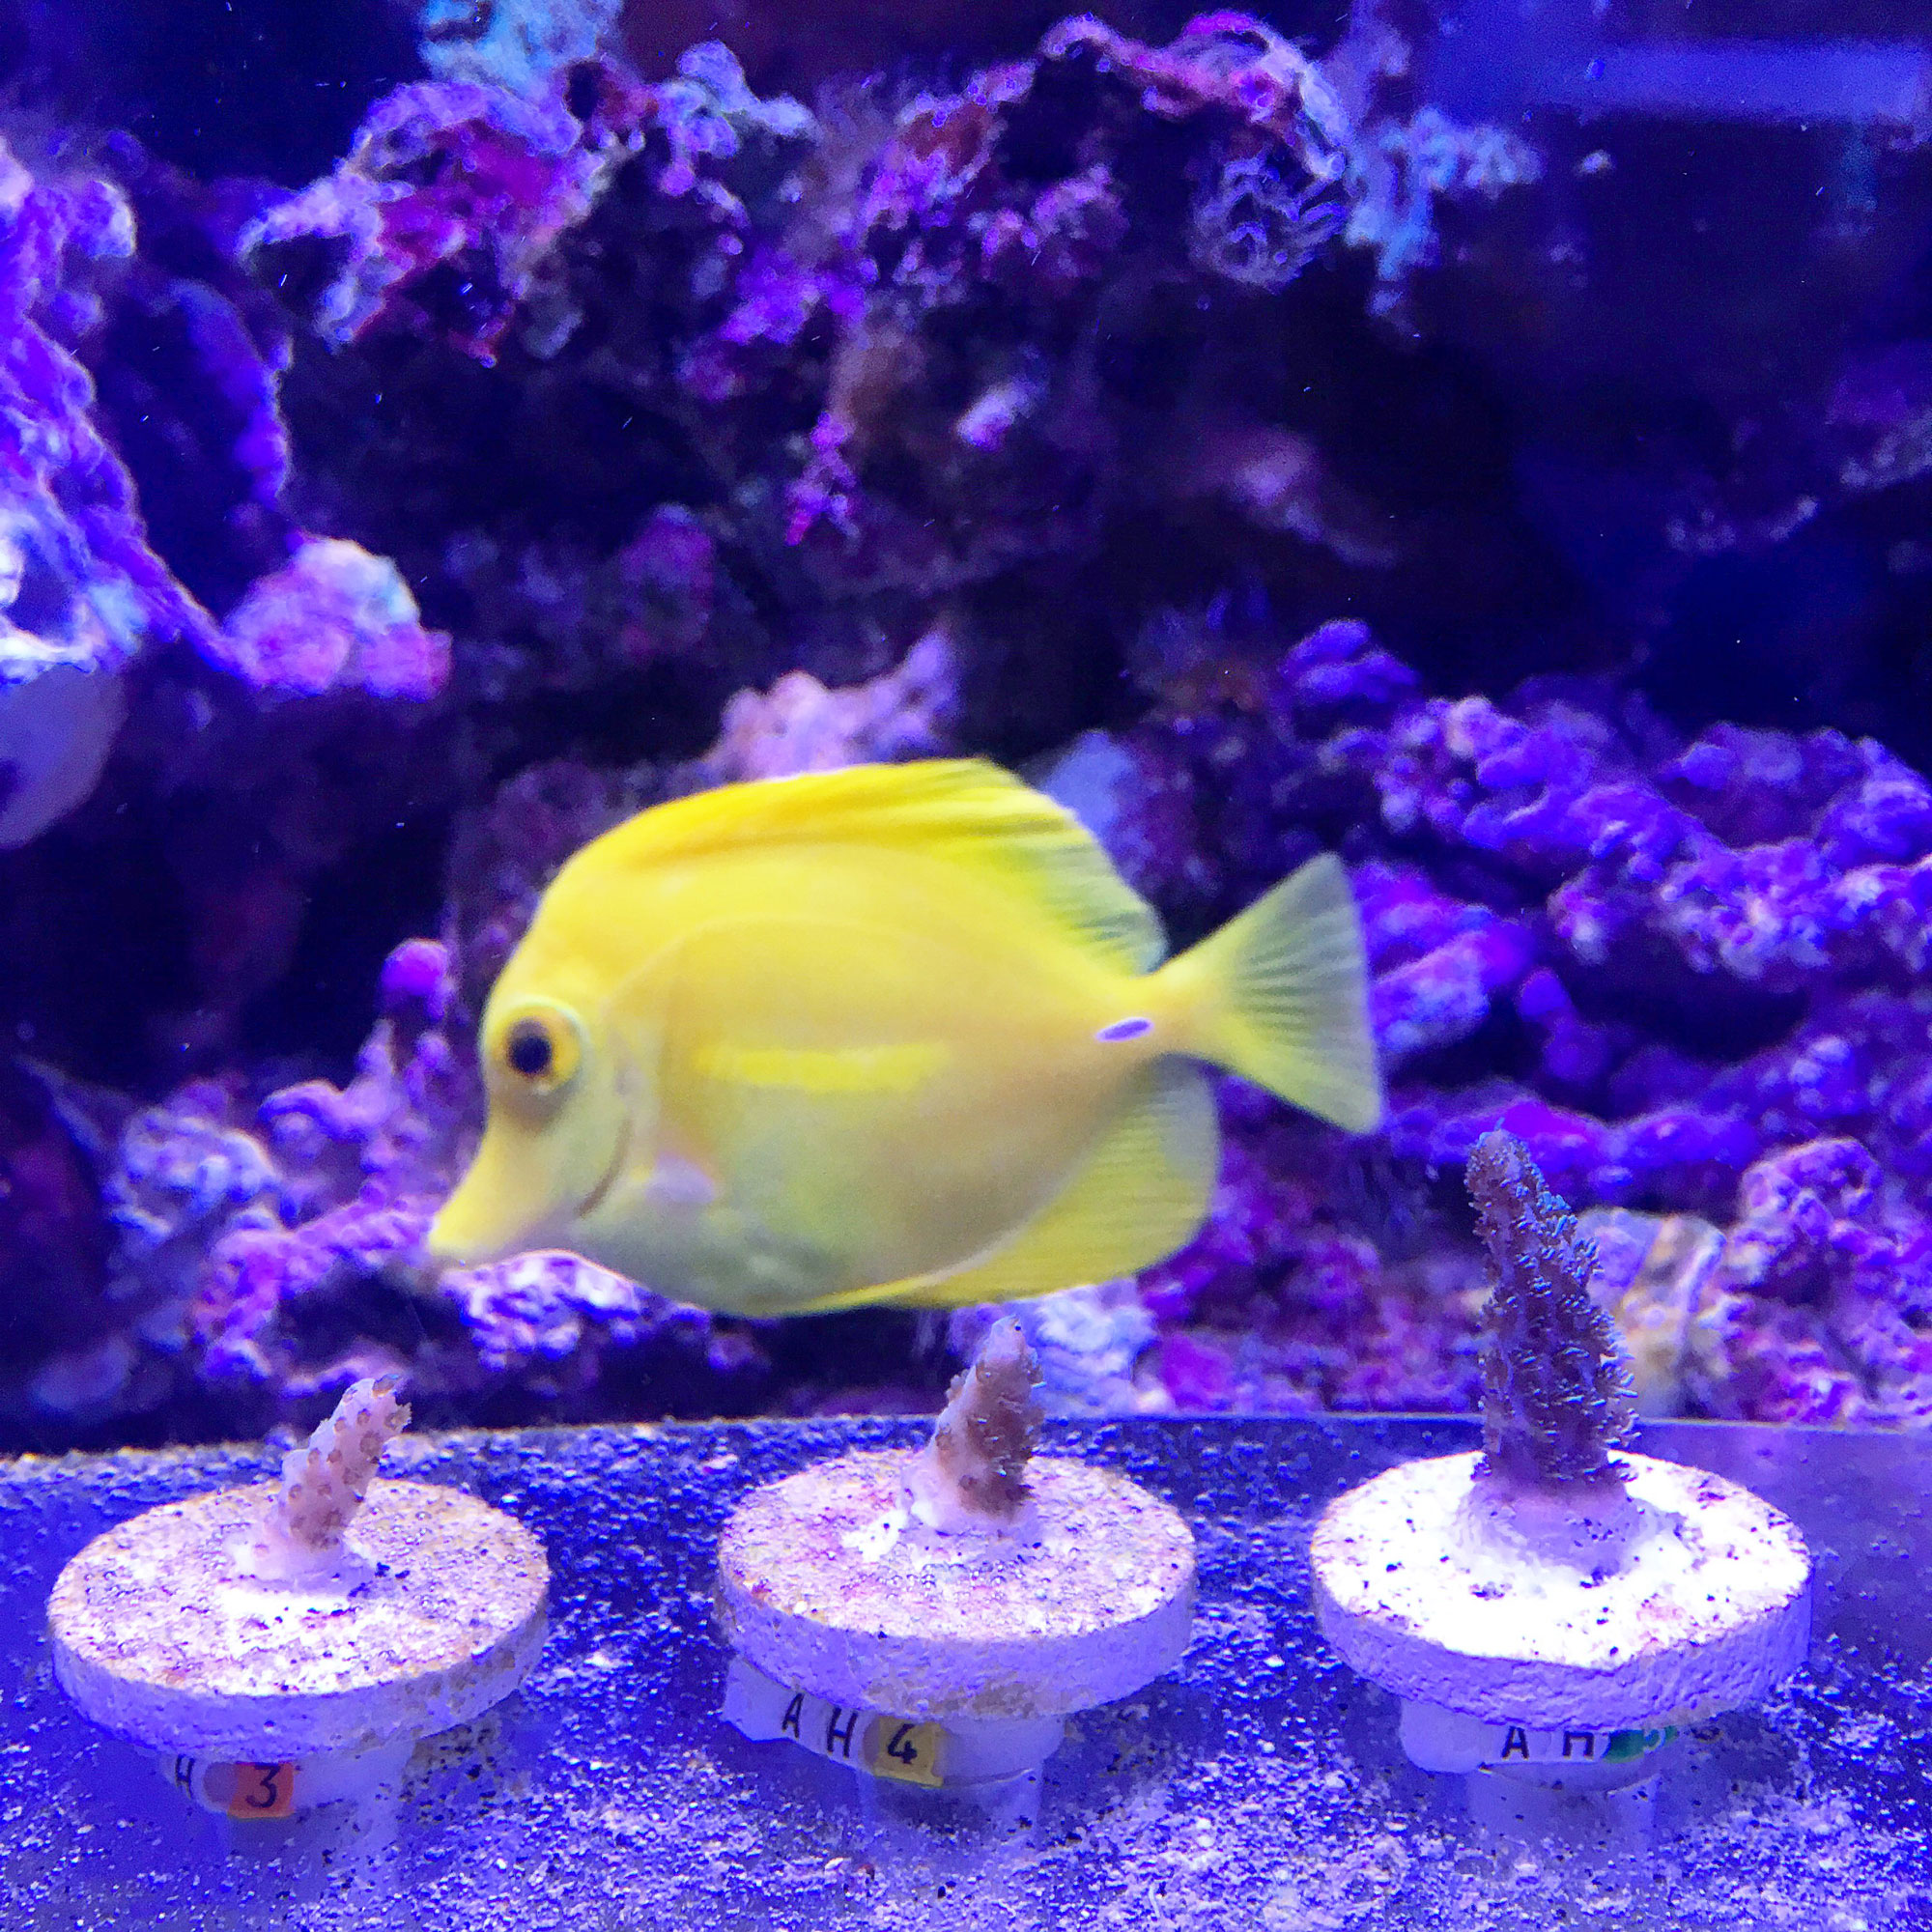 A yellow fish swims past three small coral stubs on circular plates, in a blue tinted tank